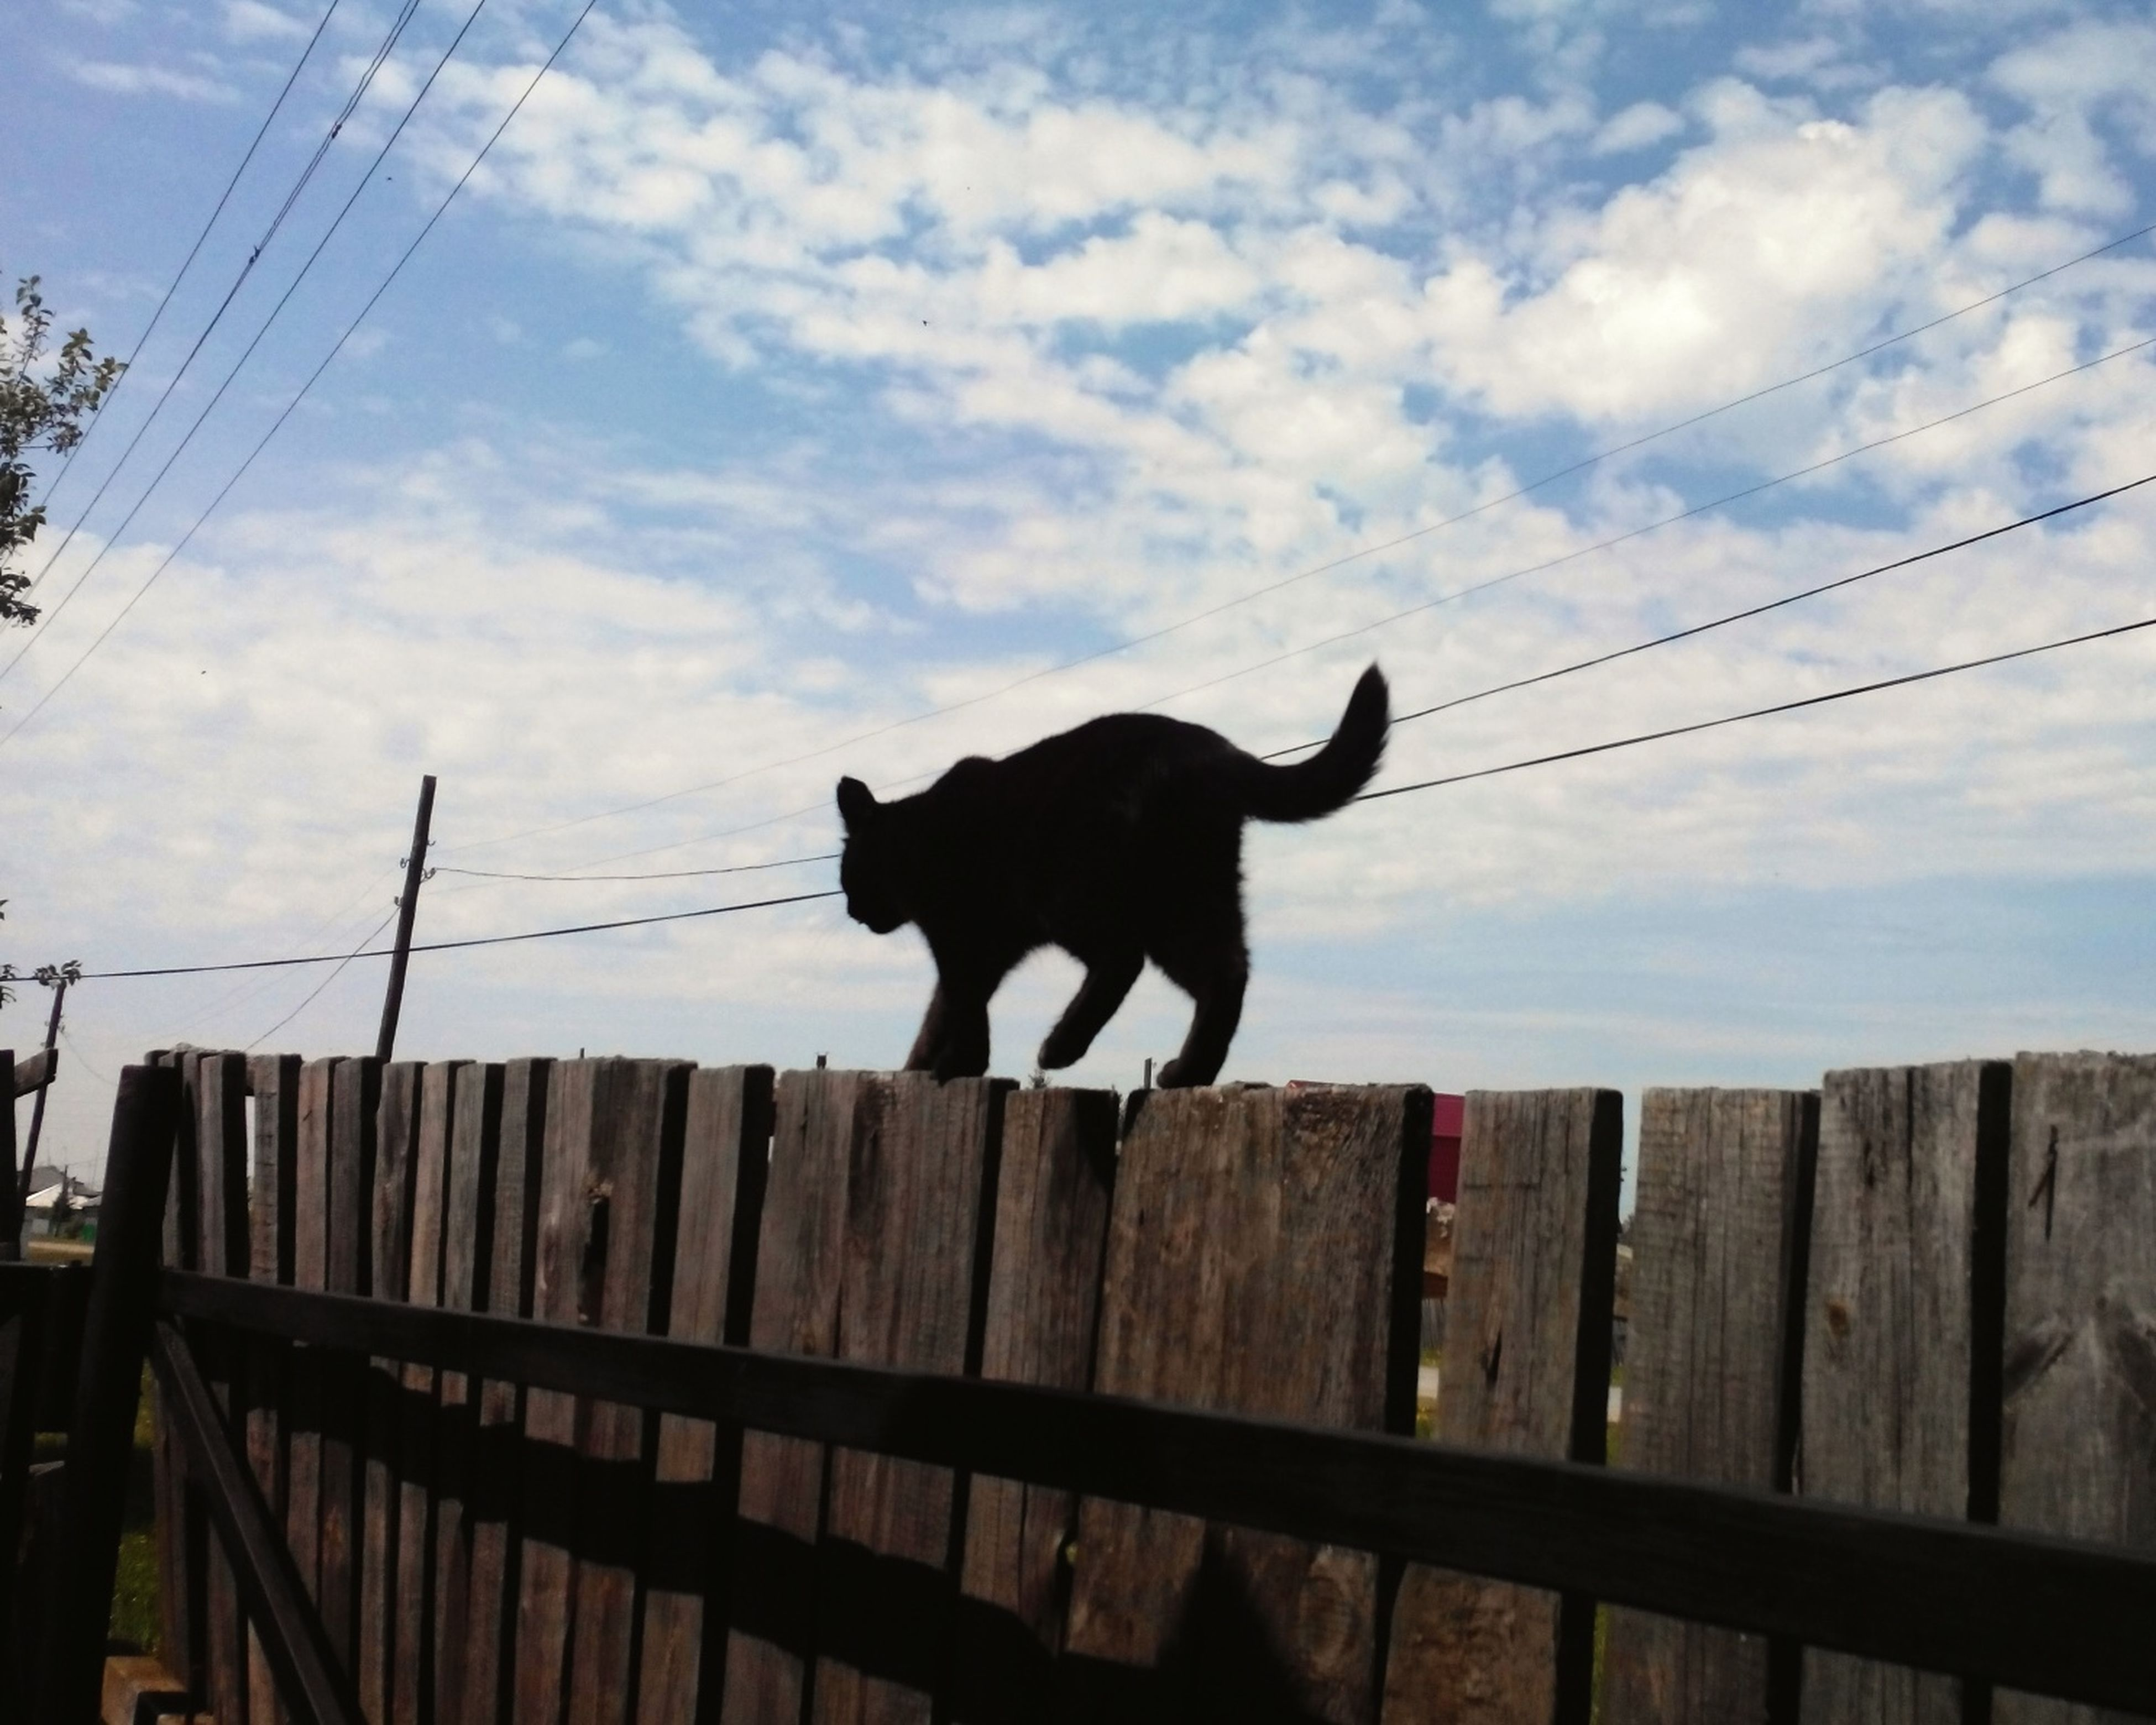 animal themes, one animal, mammal, domestic animals, pets, low angle view, power line, sky, cable, connection, electricity pylon, electricity, cloud - sky, outdoors, power supply, cloud, full length, zoology, no people, standing